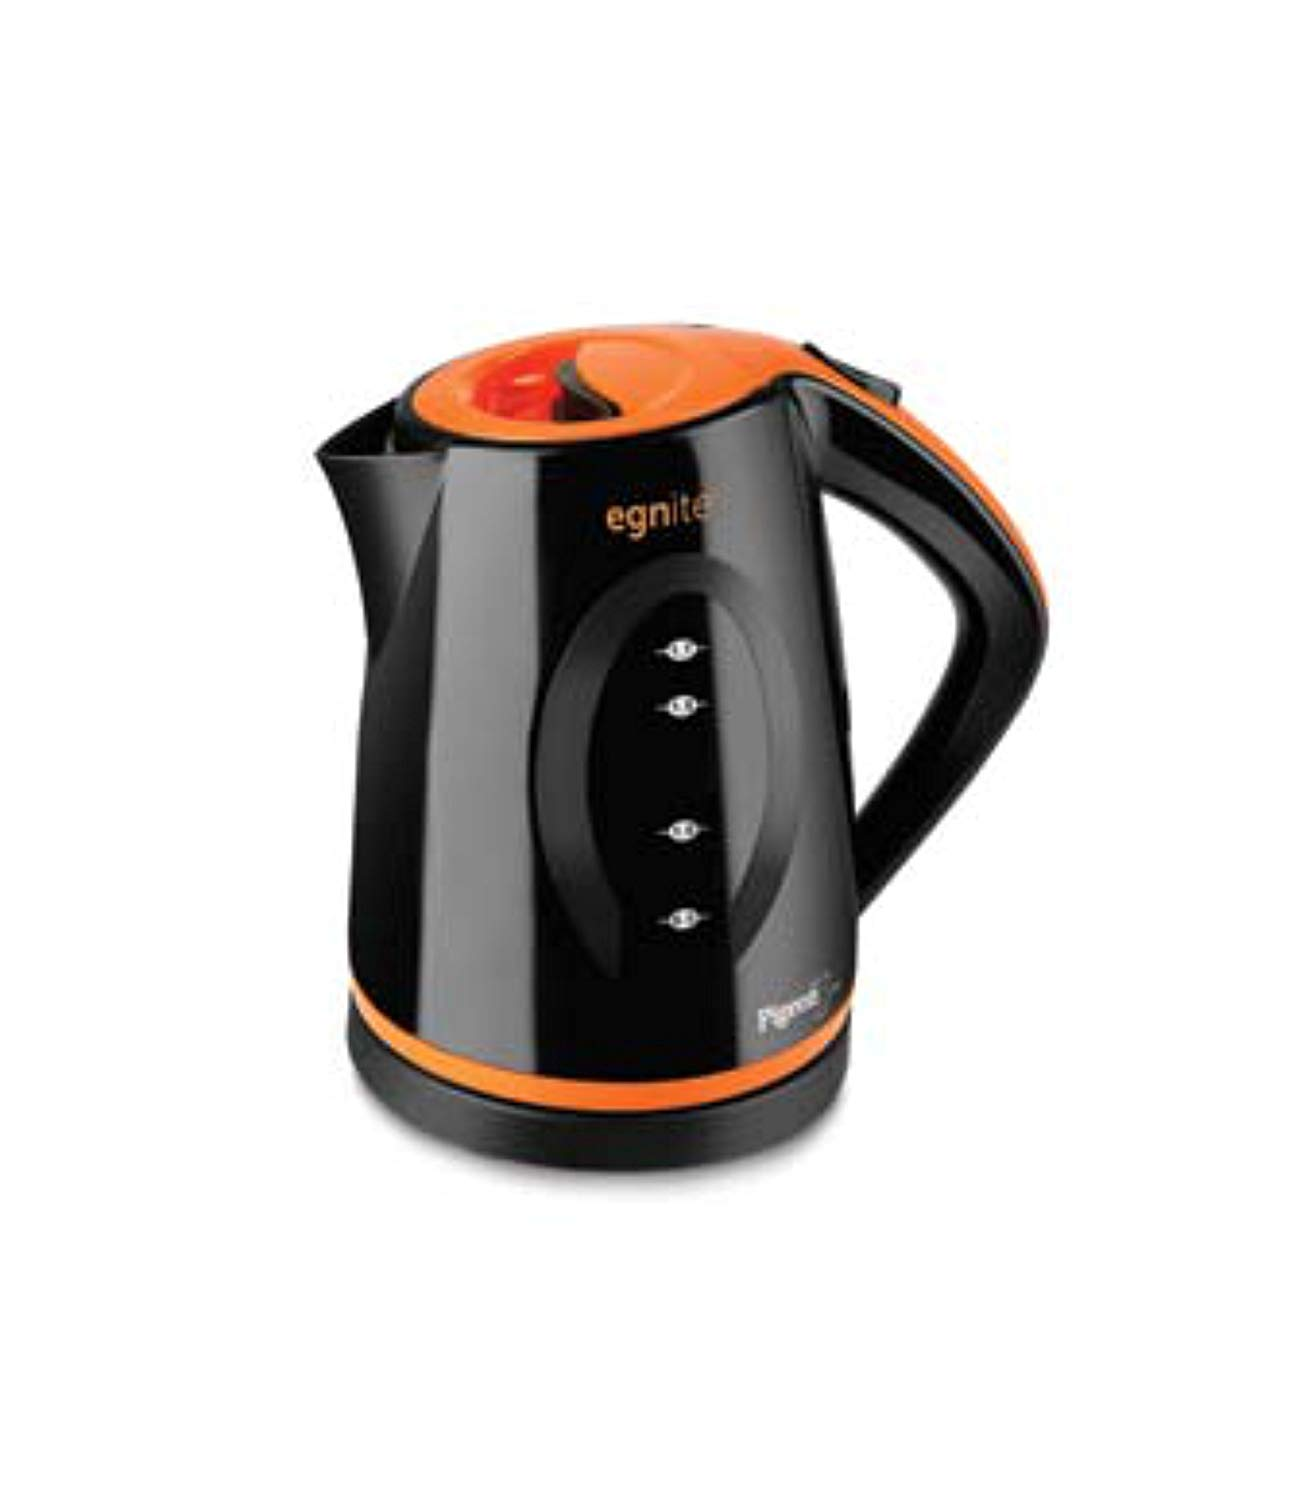 Pigeon Egnite Plastic 1.7L Electric Kettle Image